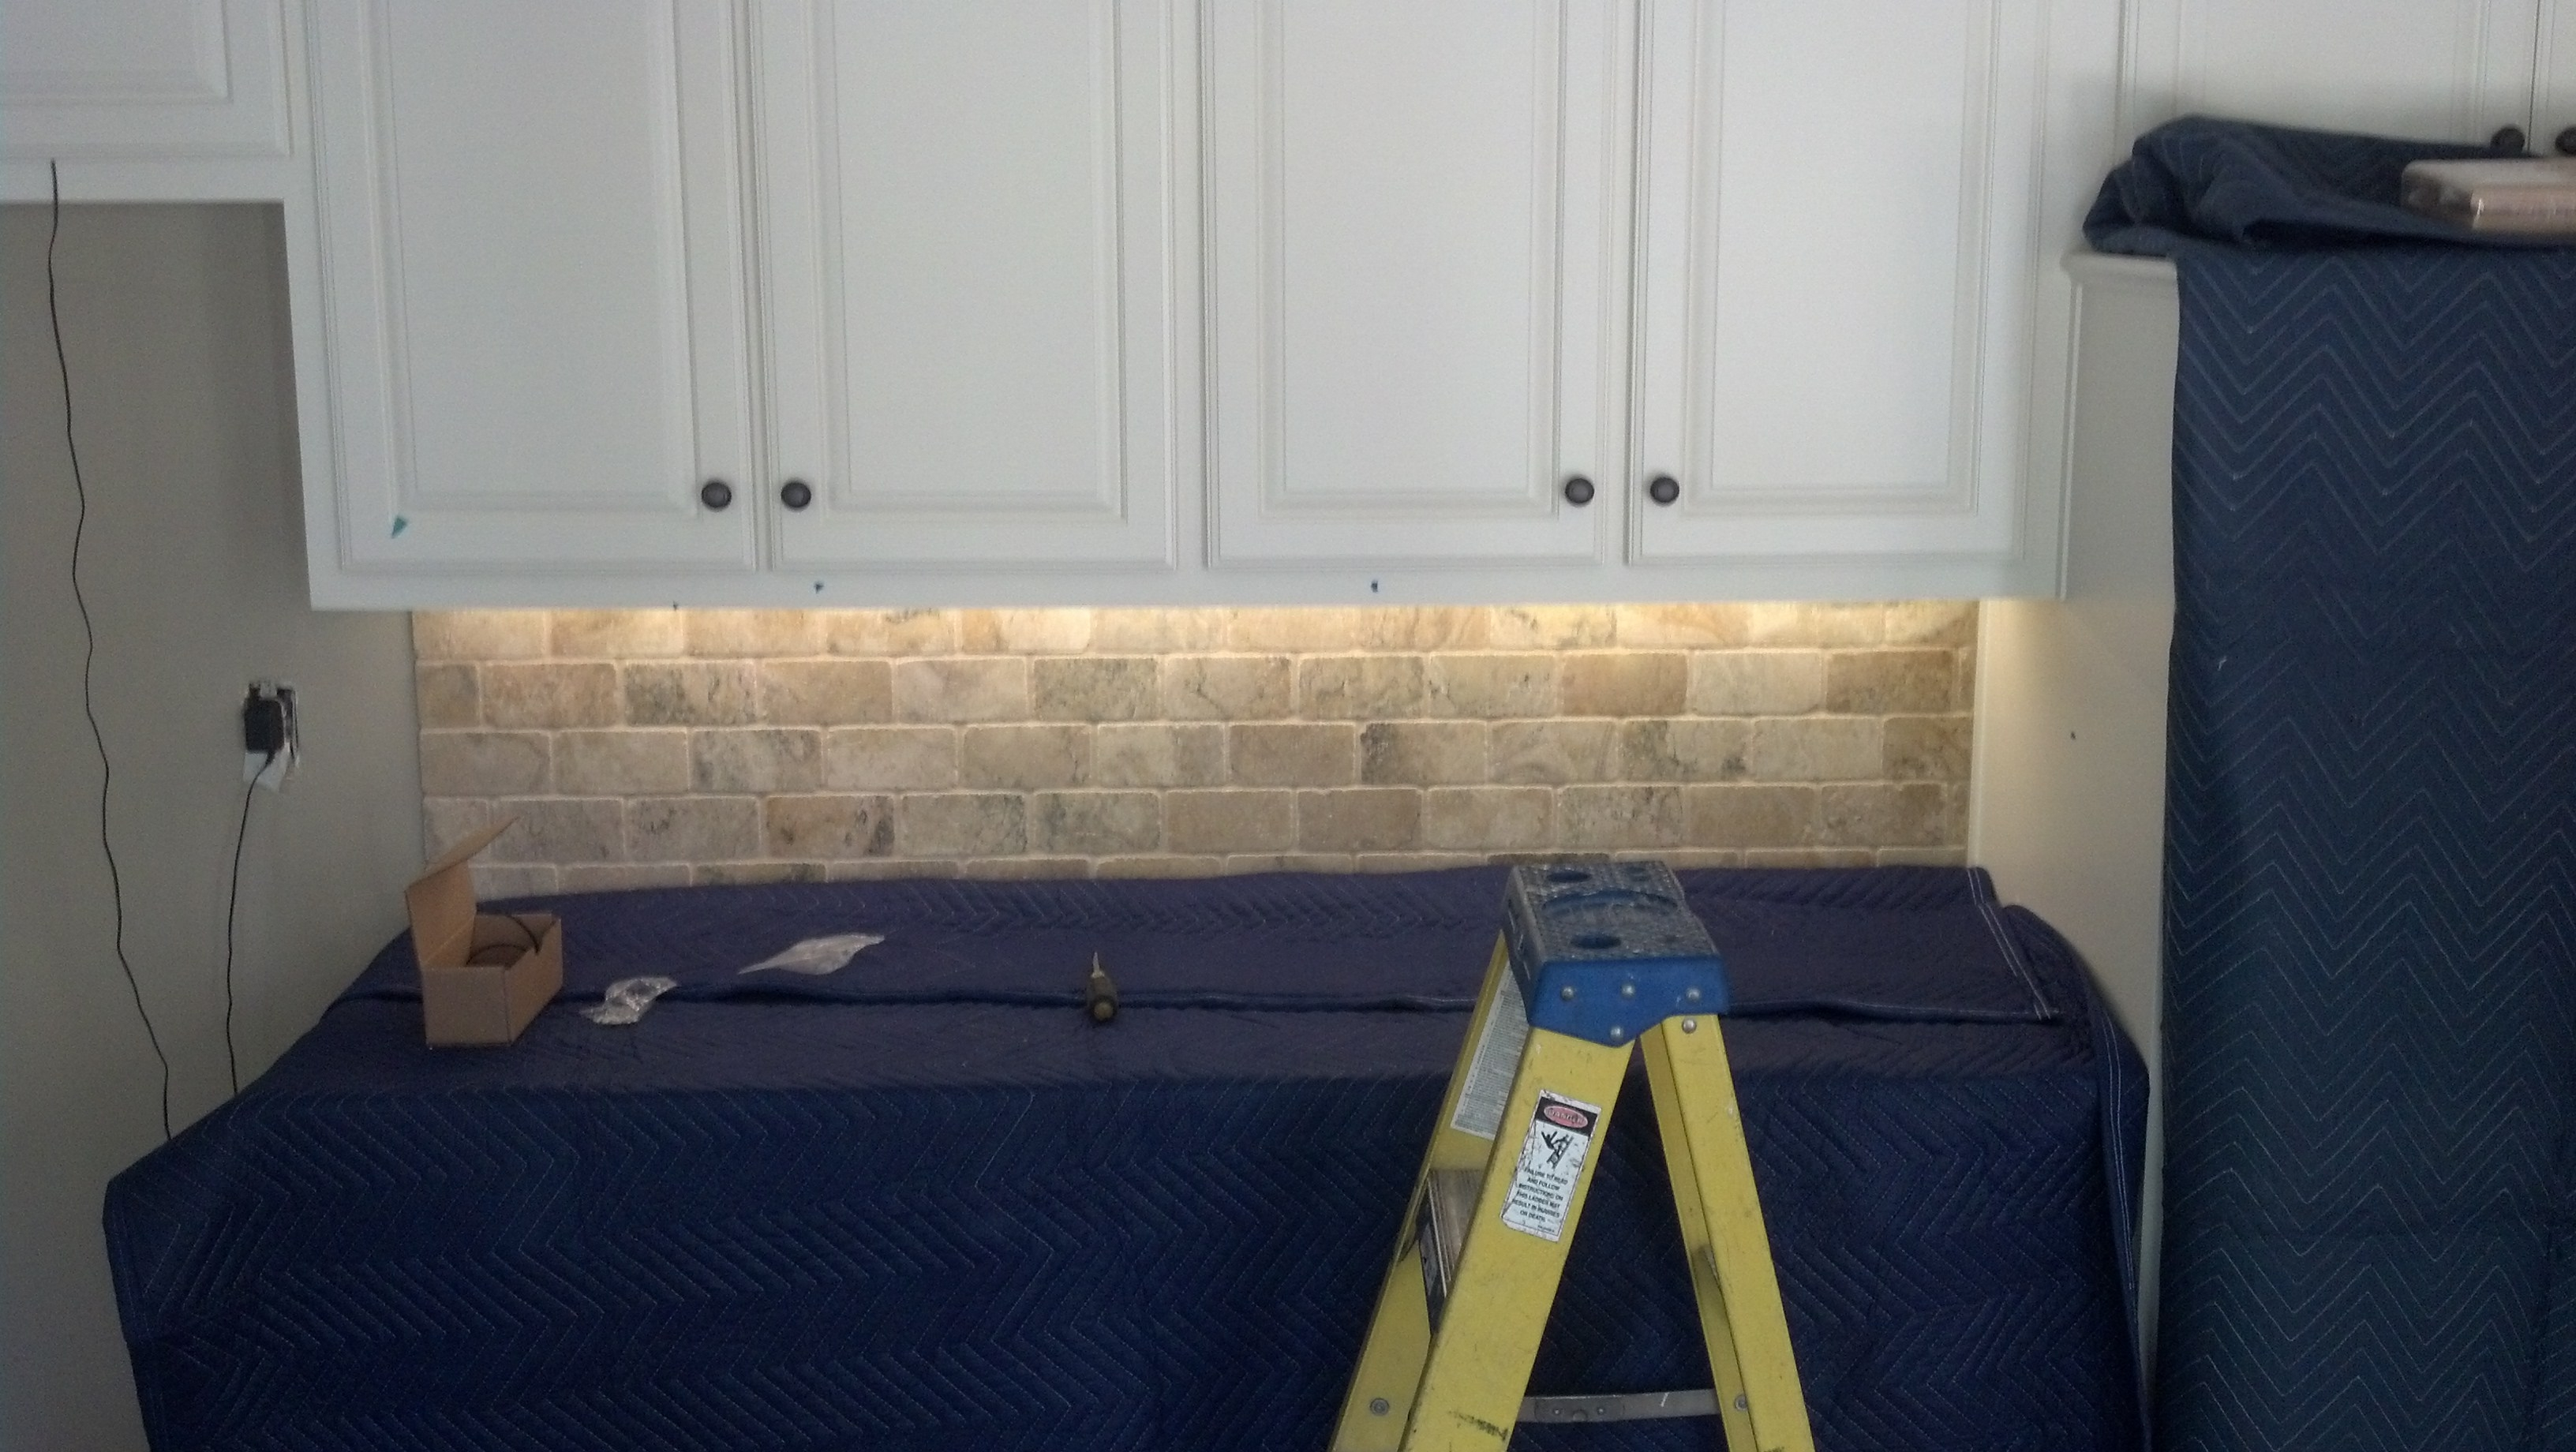 Kitchen Cabinets Rope Lighting